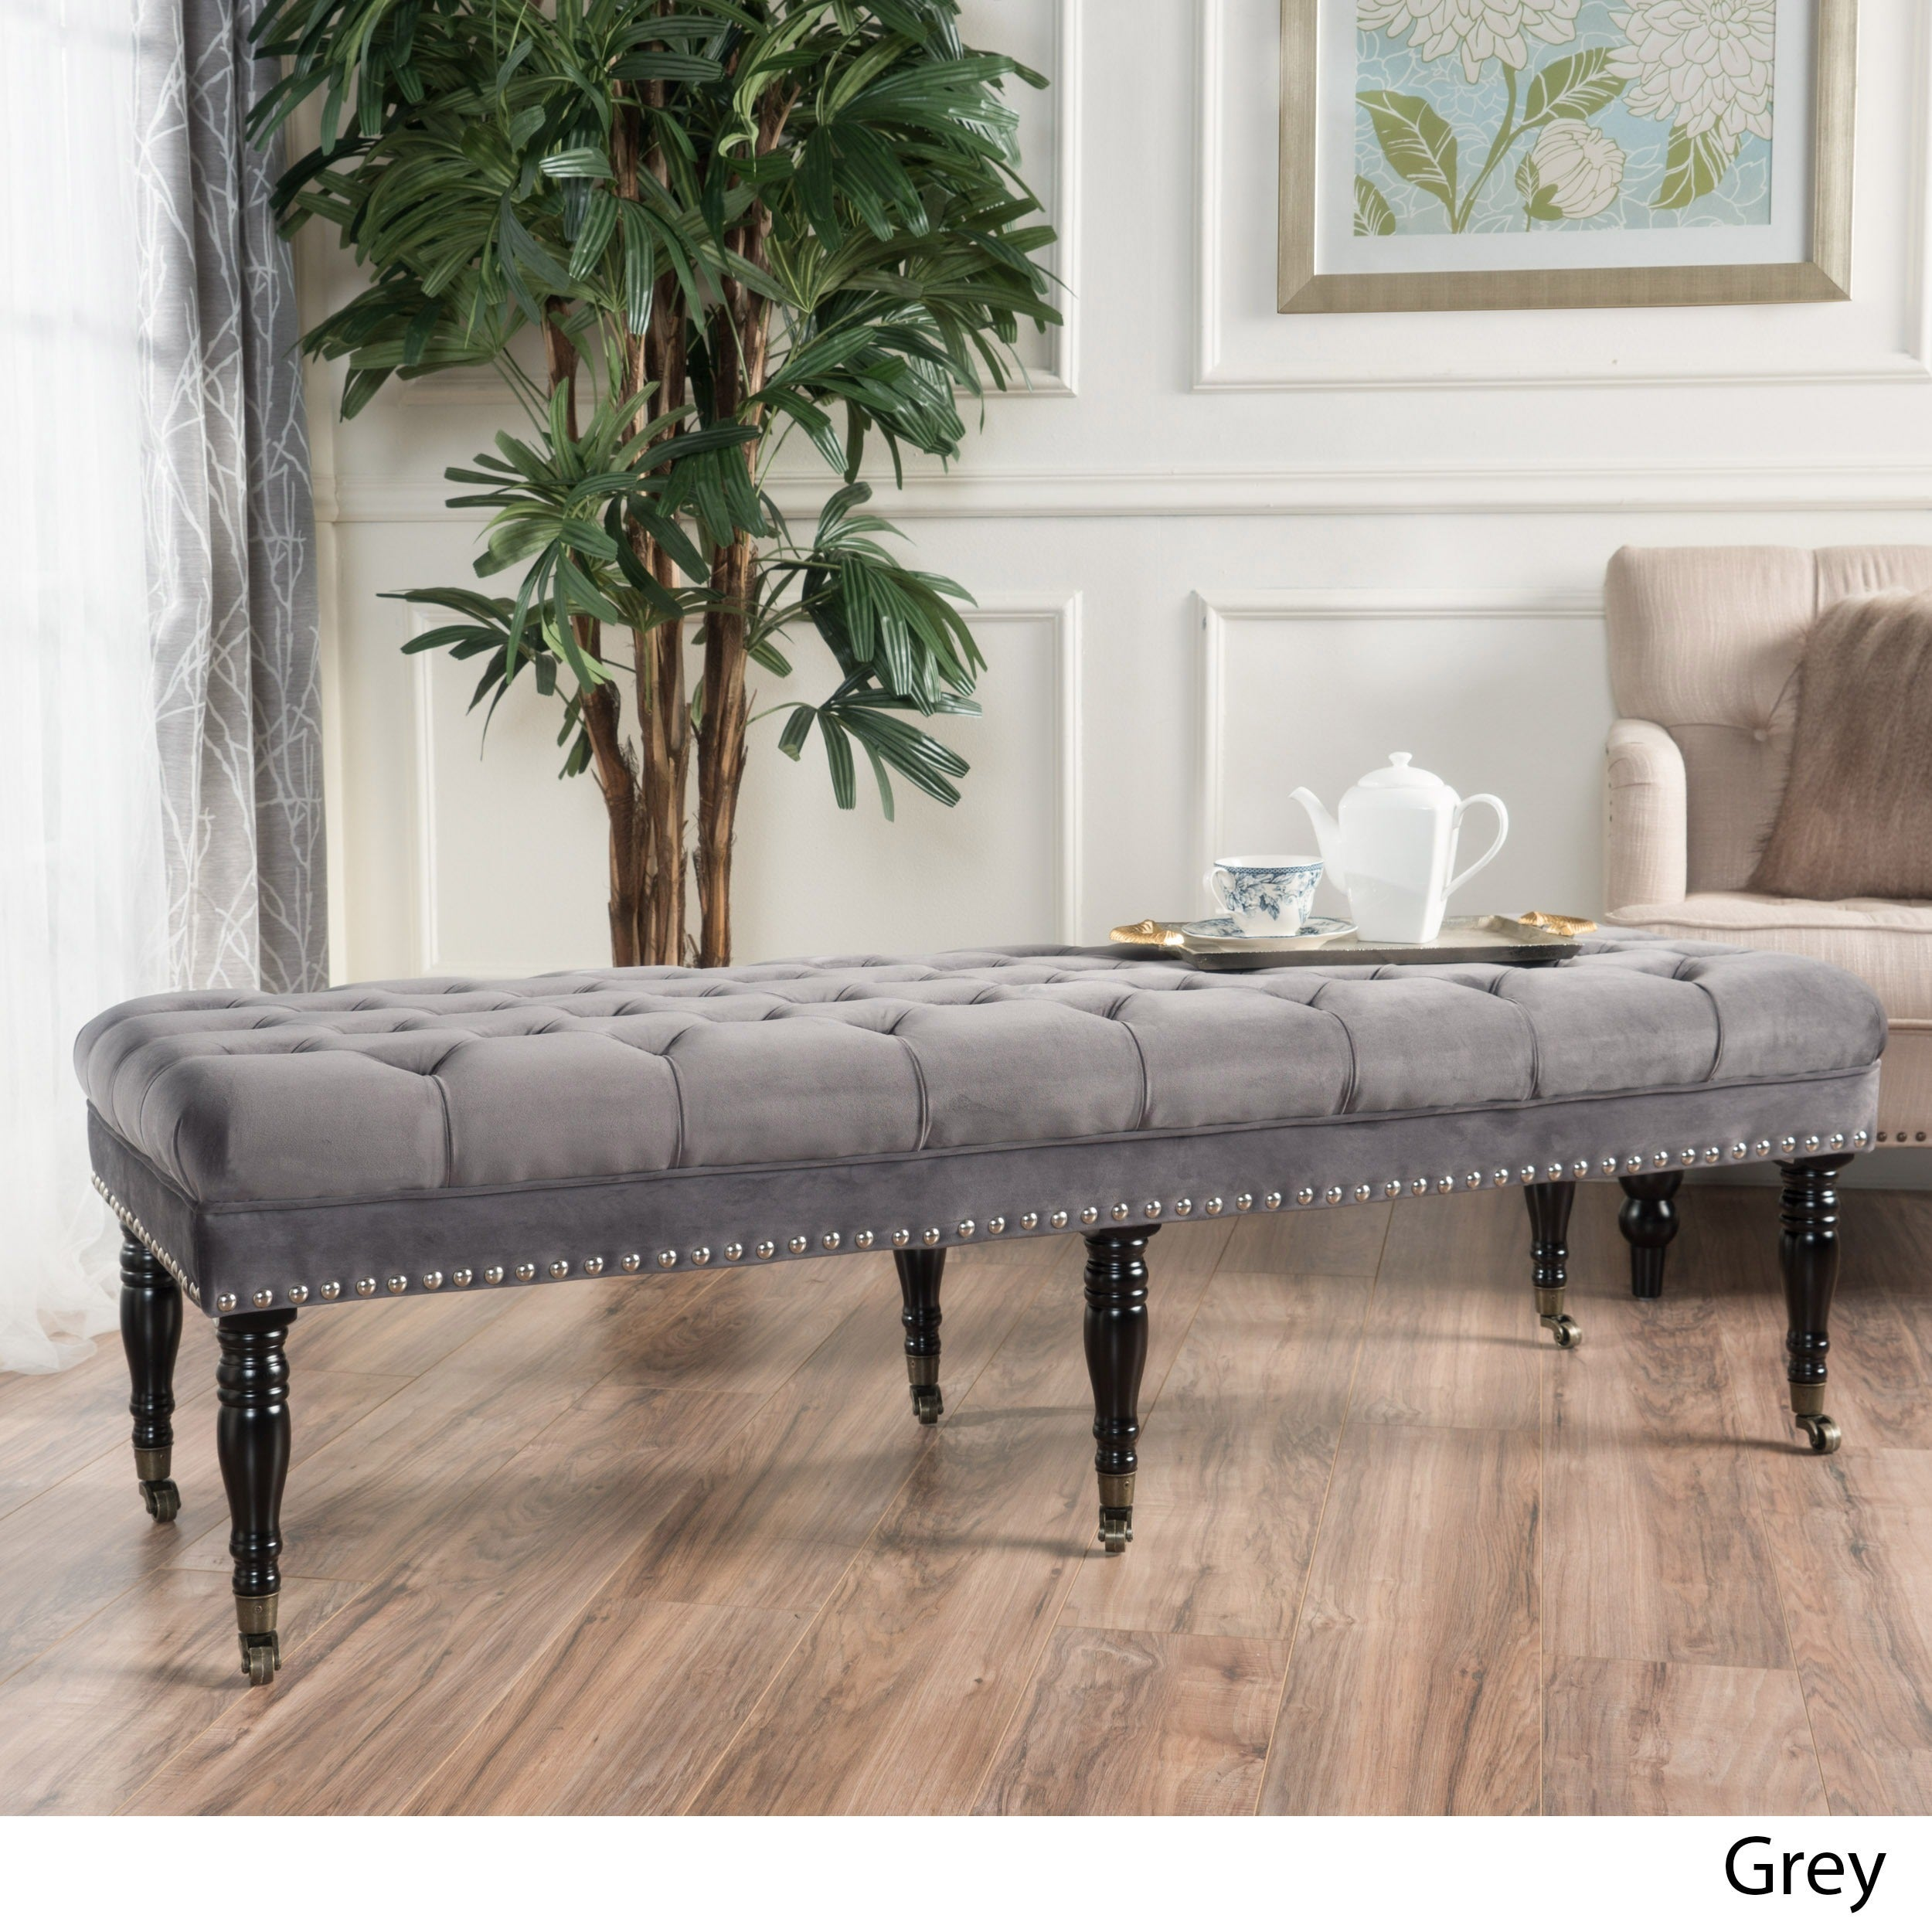 storage mid charlton tufted home century lewistown wayfair upholstered gray pdx furniture bench